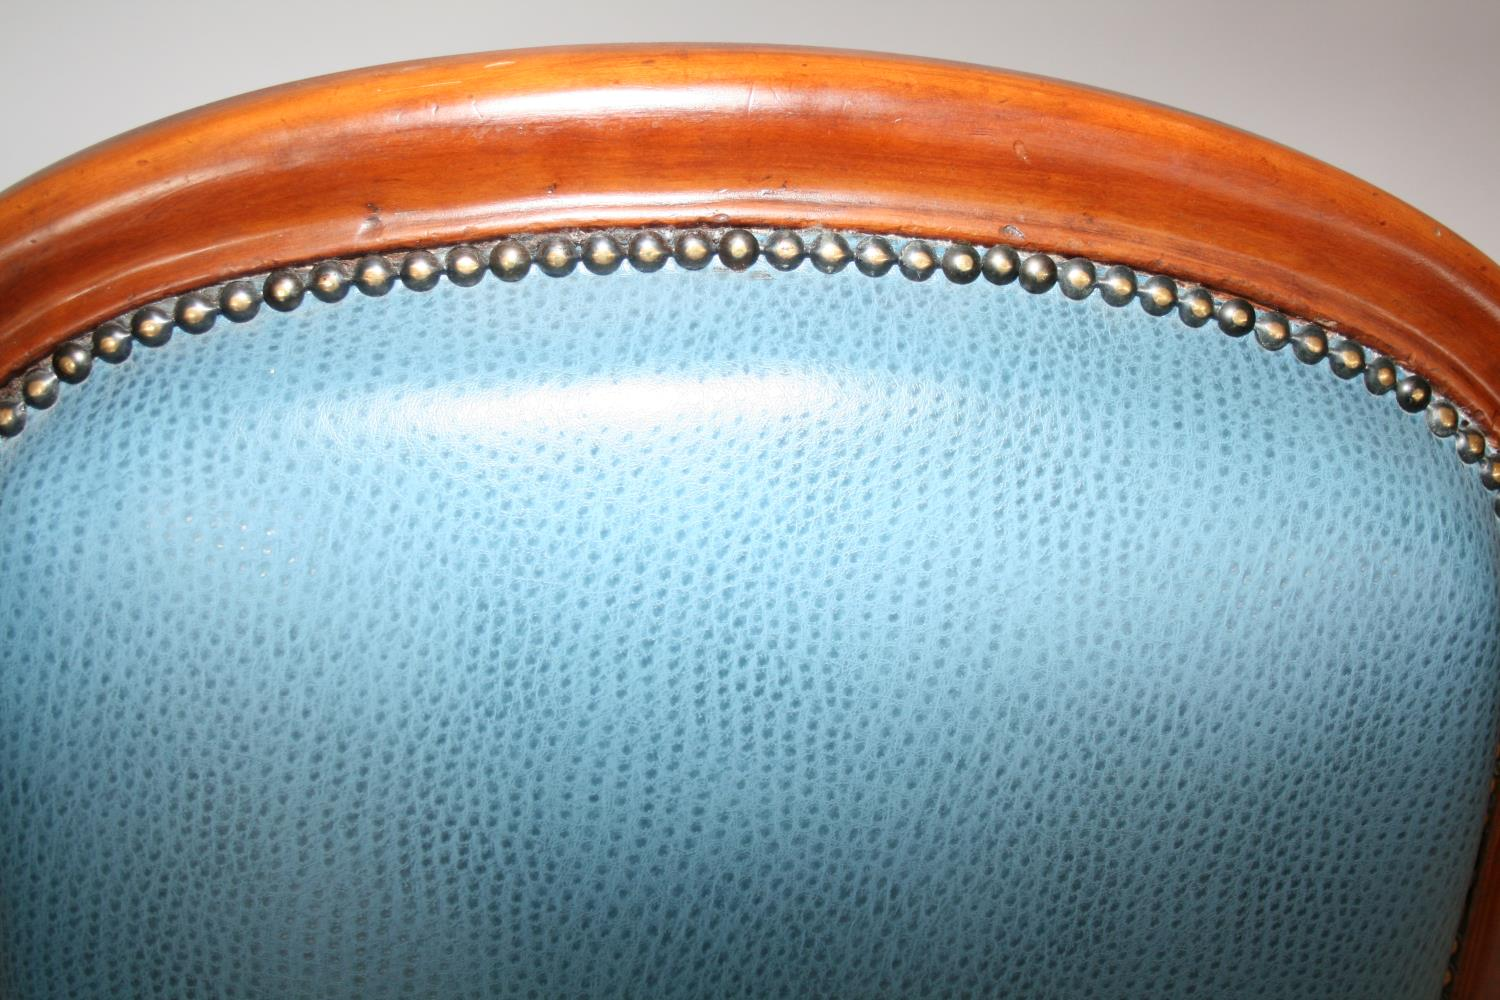 Near pair of Edwardian mahogany armchairs, with speckled hide upholstery. - Image 3 of 3